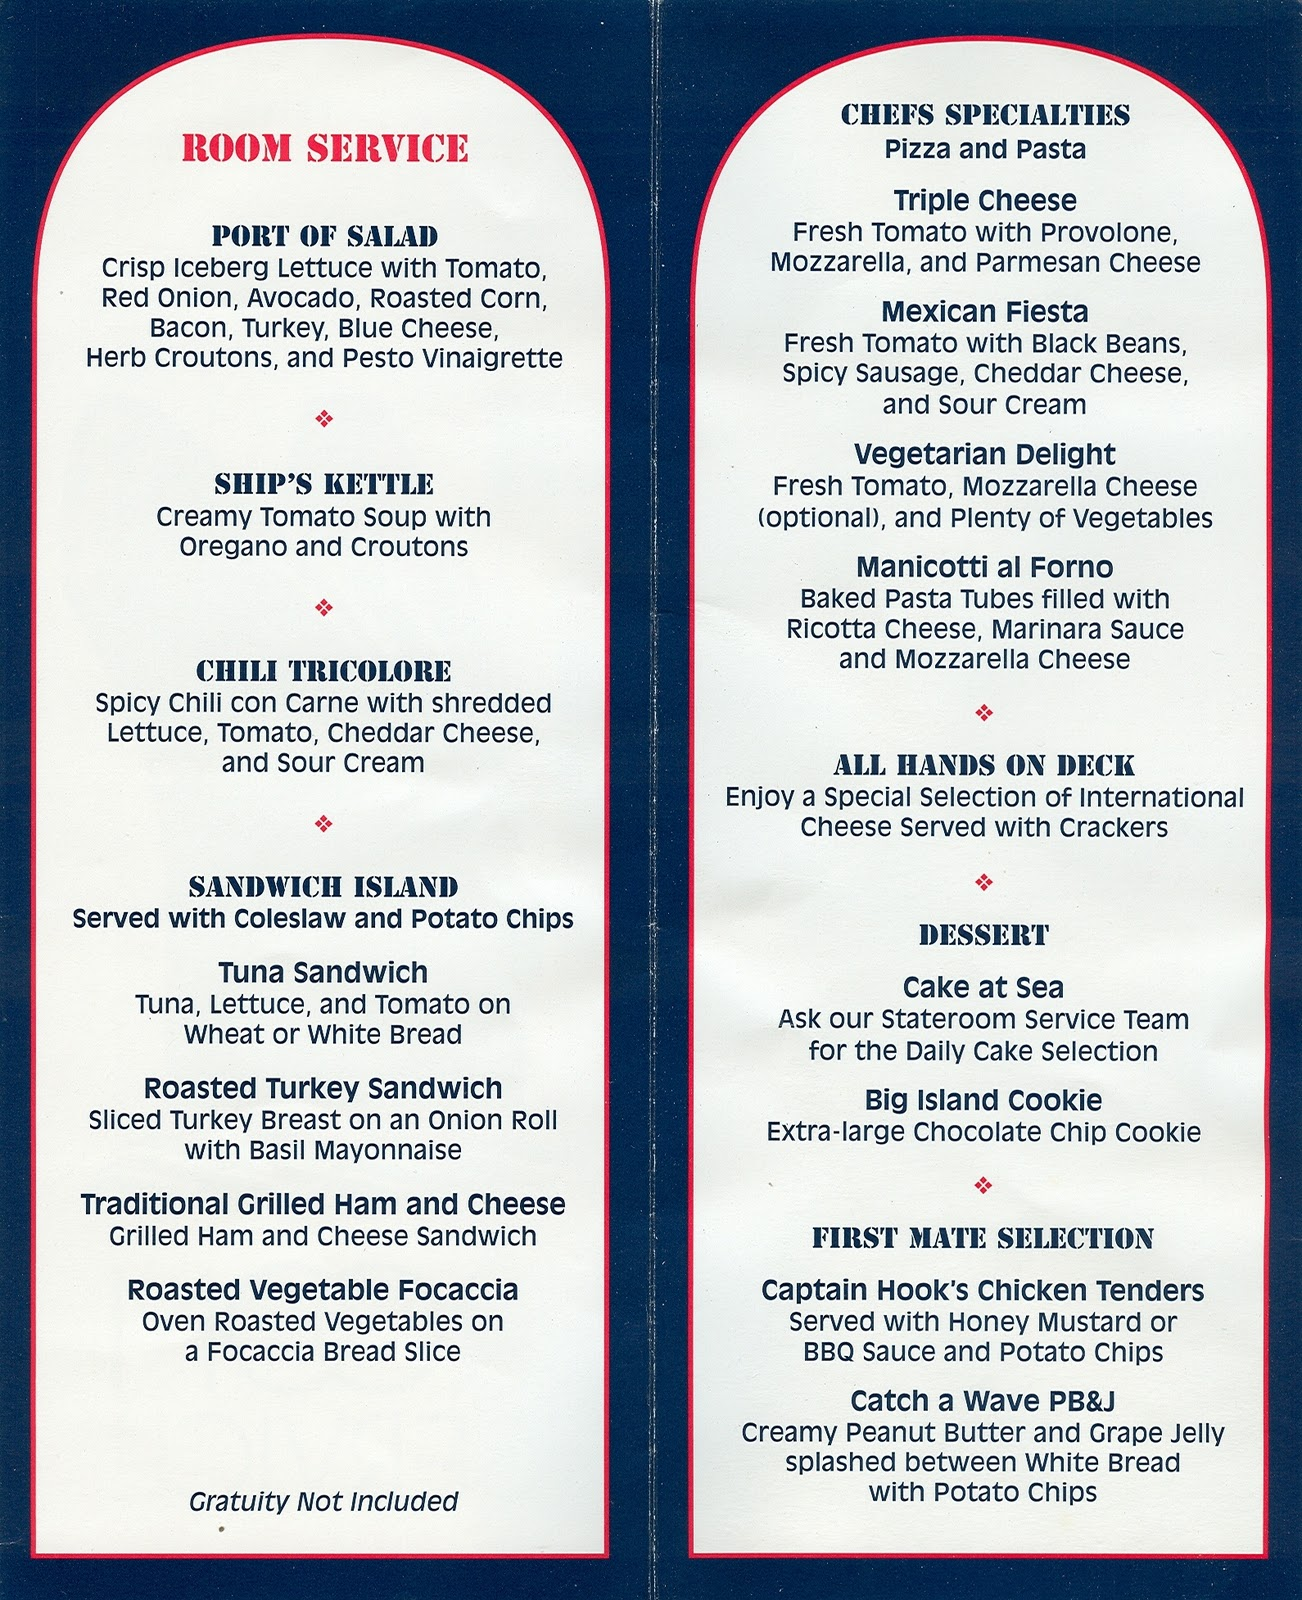 Disney Cruise Line Room Service Menu